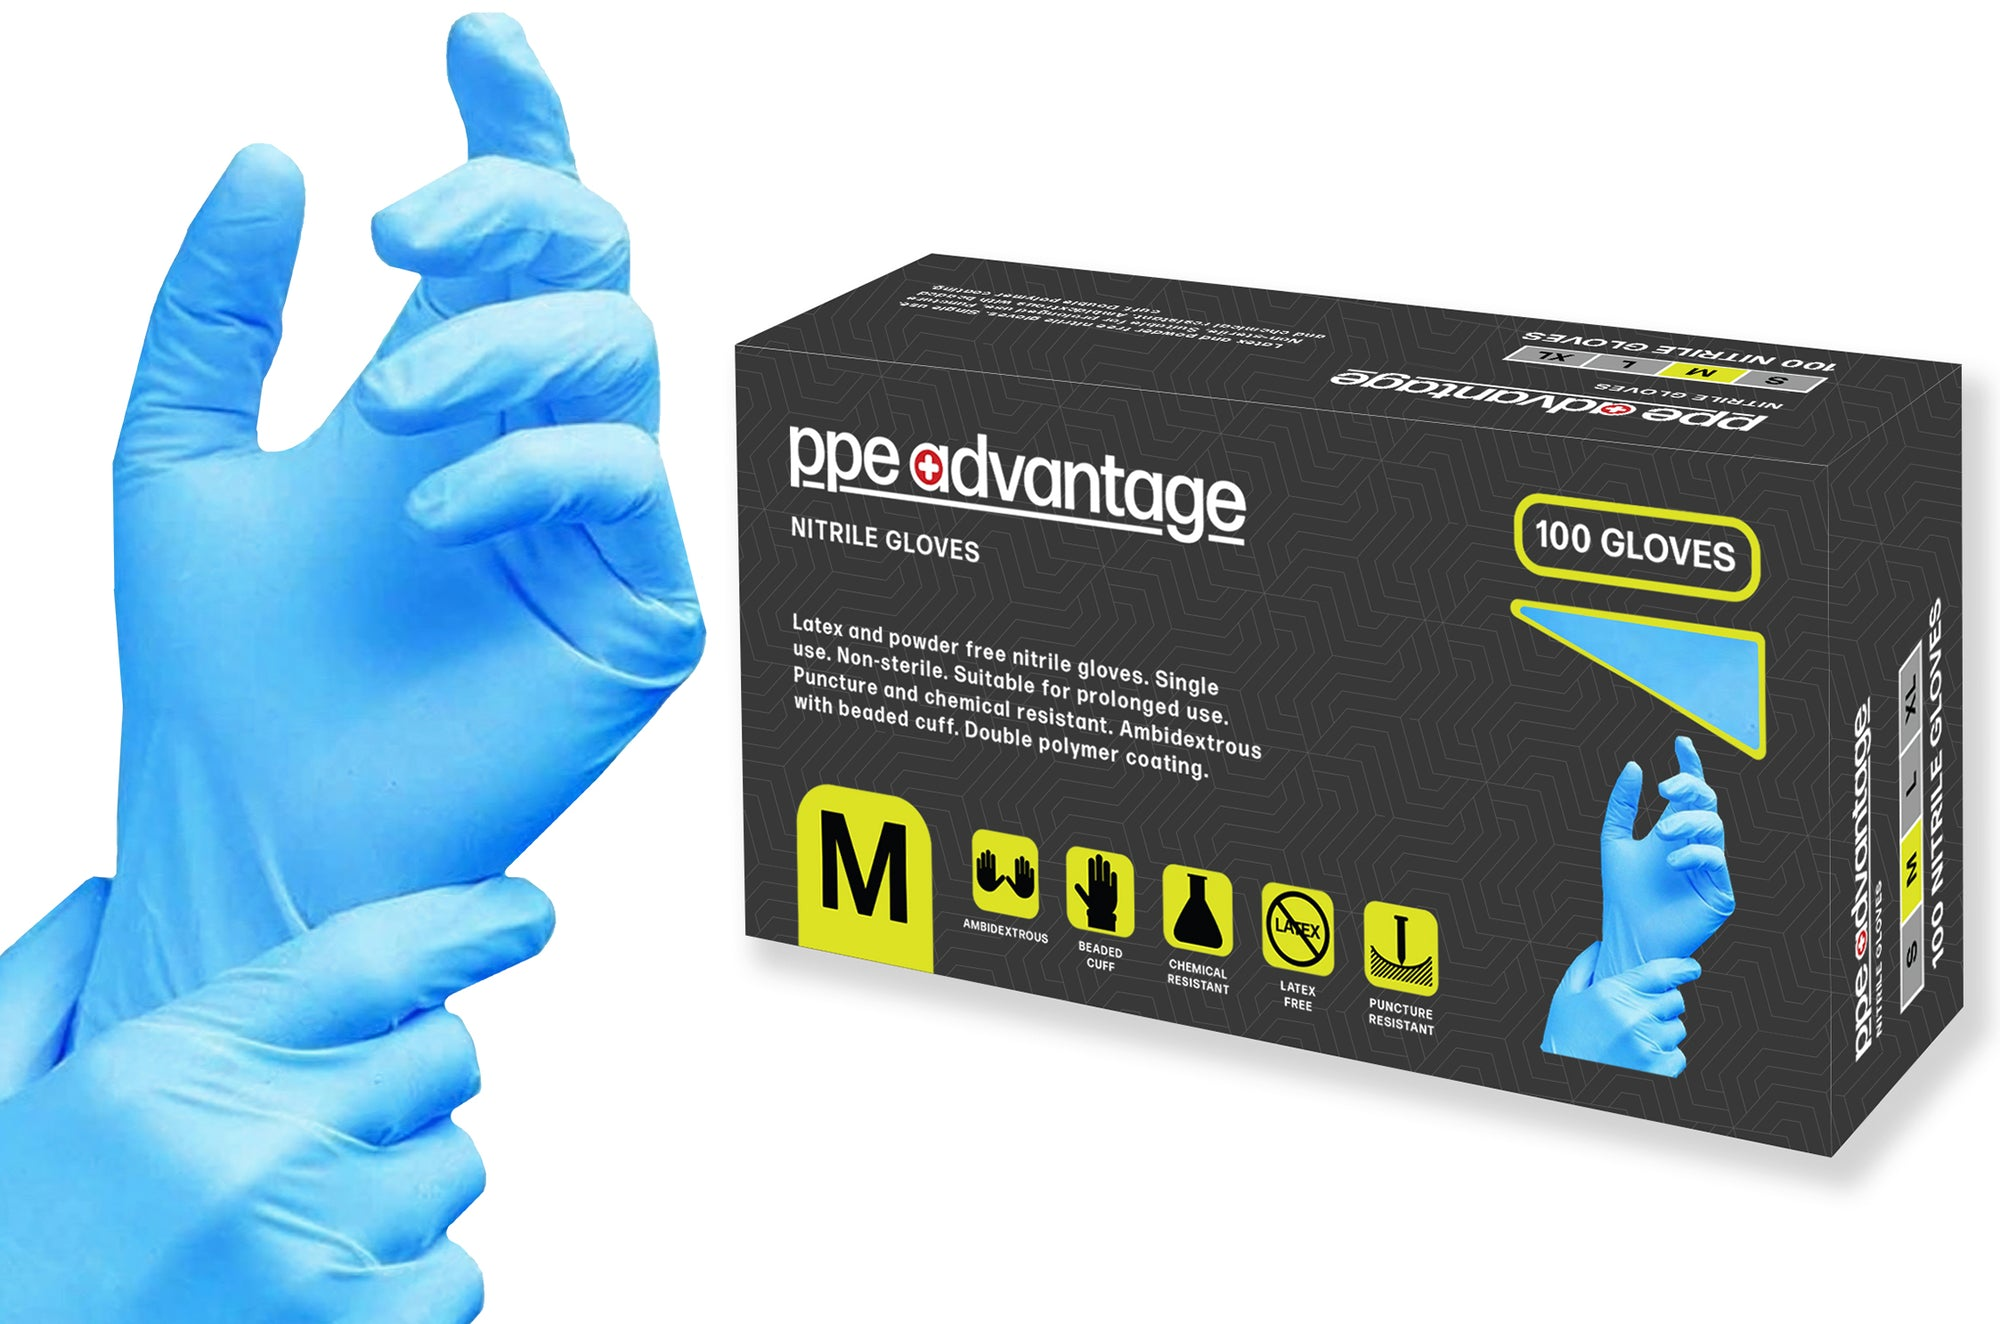 3001 PPE Advantage Nitrile Disposable Gloves | PPE Advantate powered by dS Product Hunters